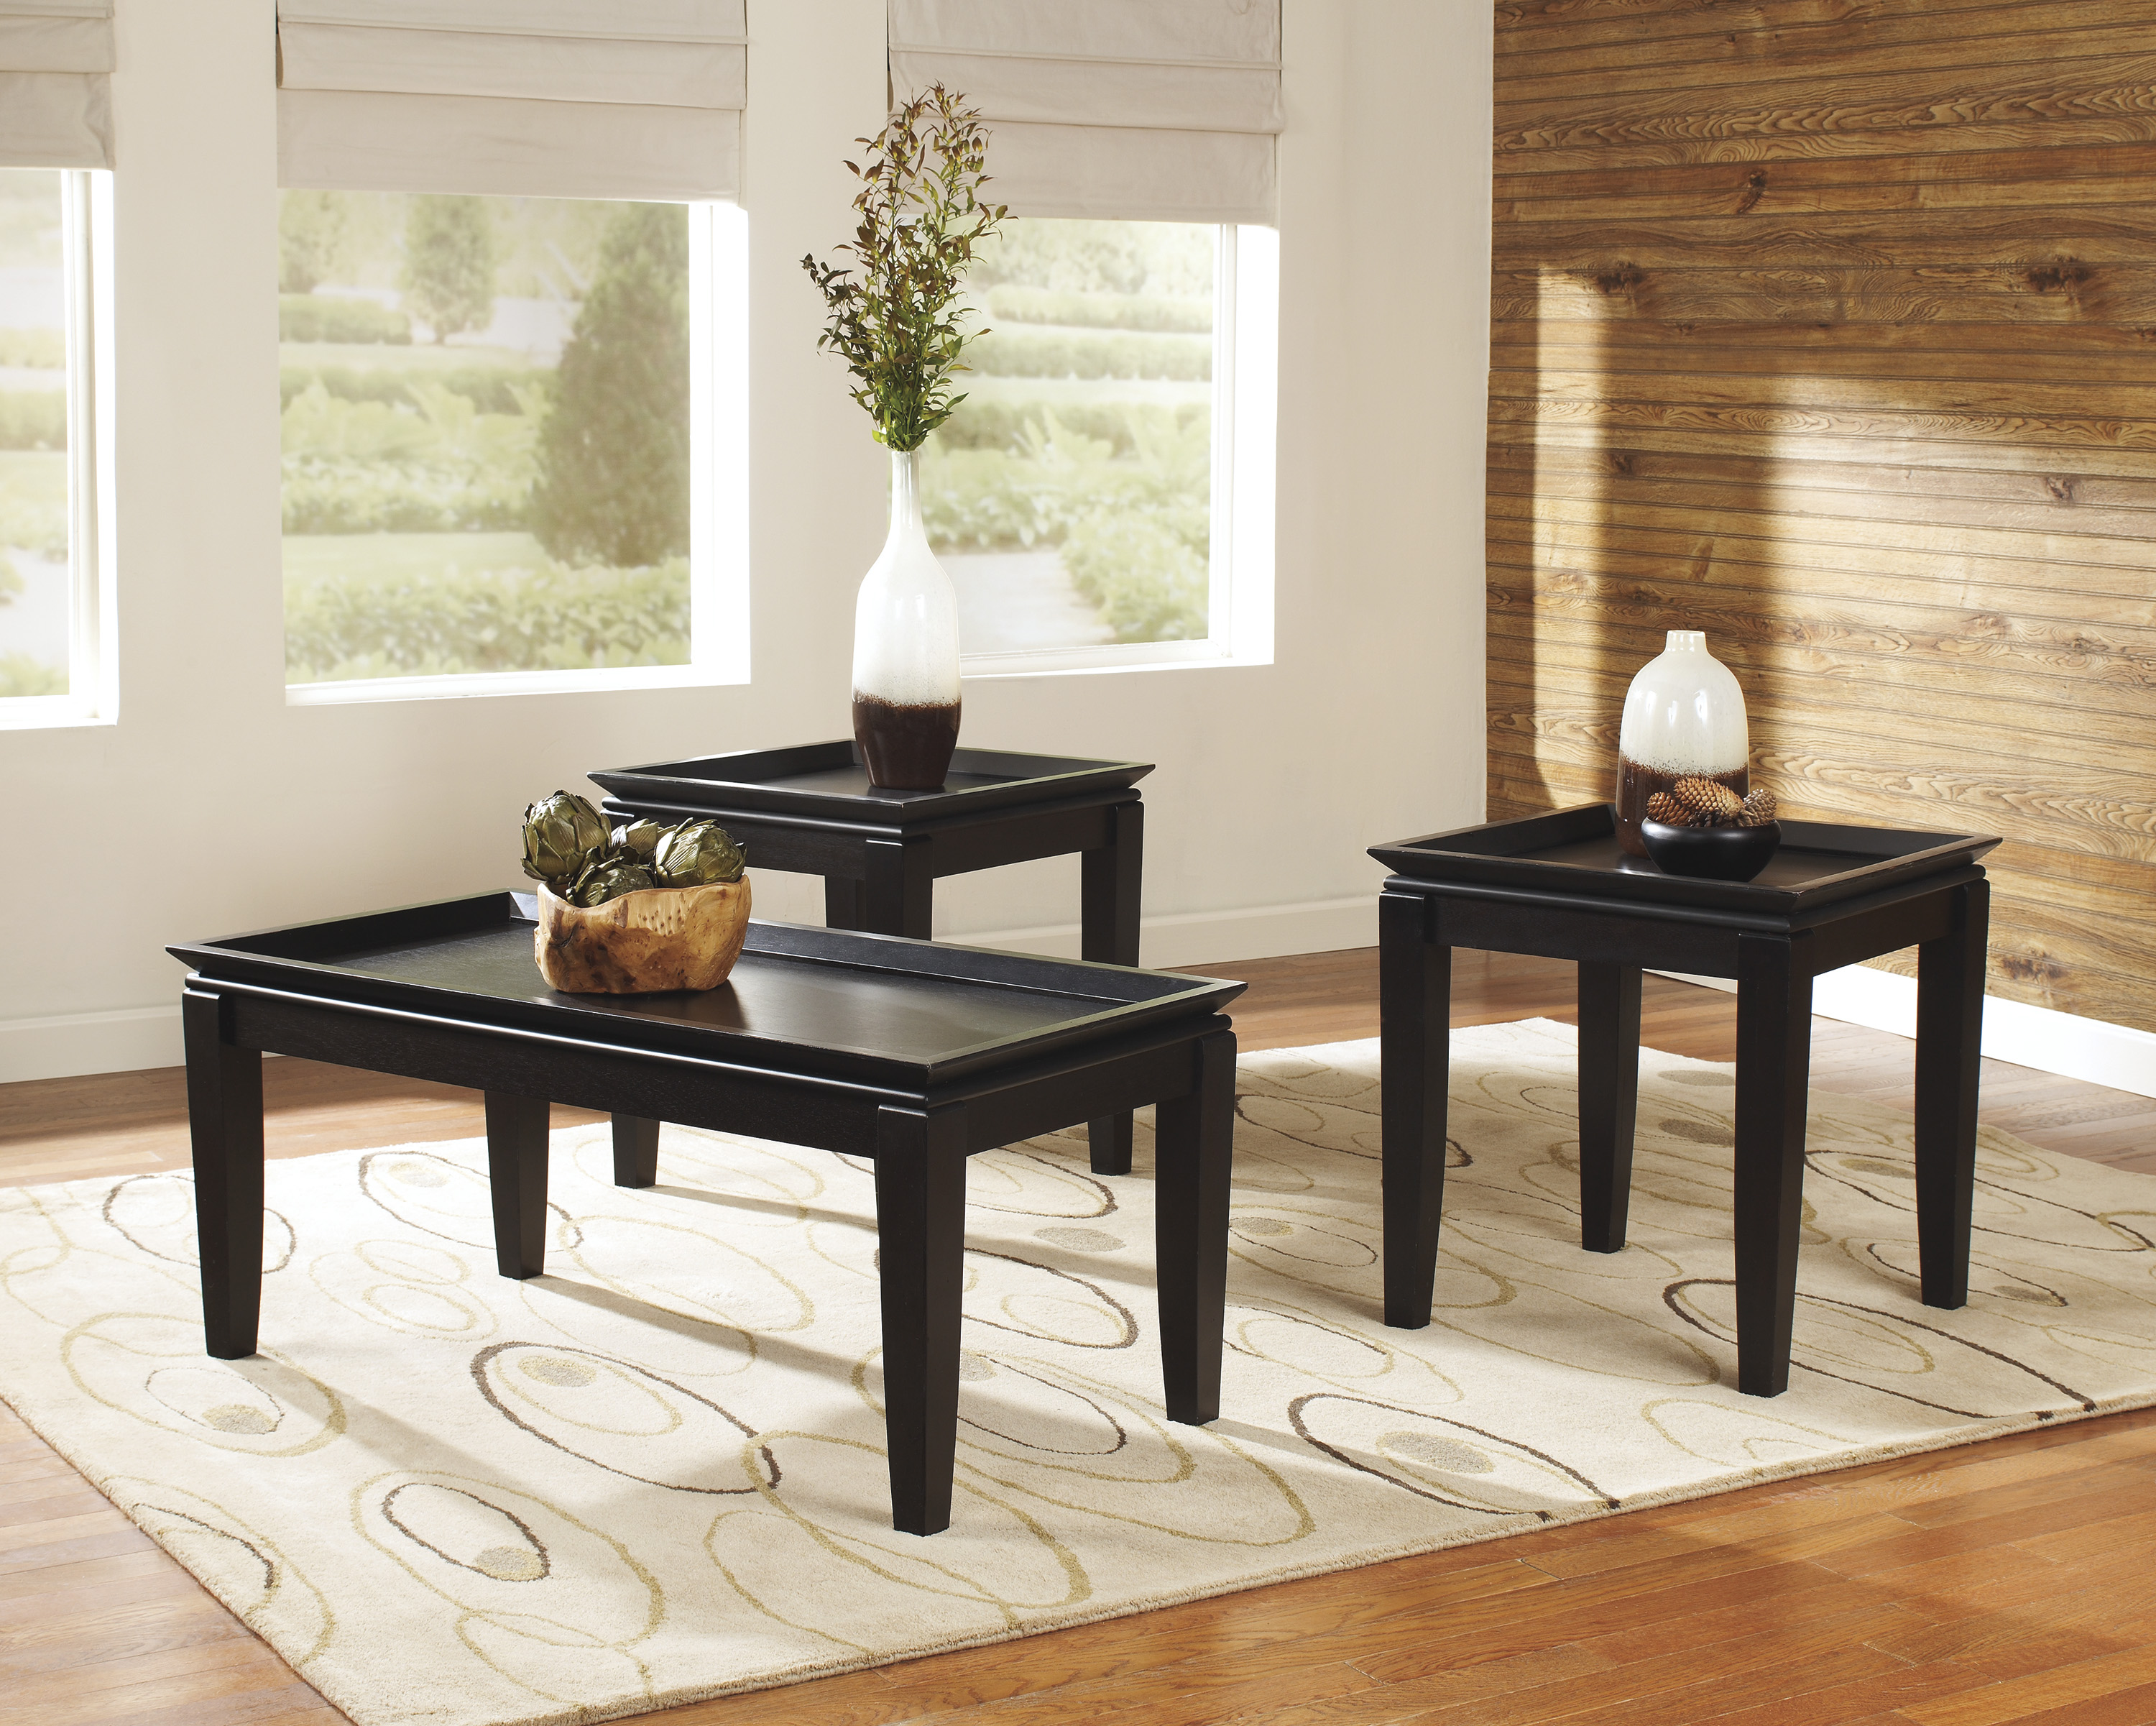 Delormy Cocktail Table & 2 End Tables  / $11.99 A Week